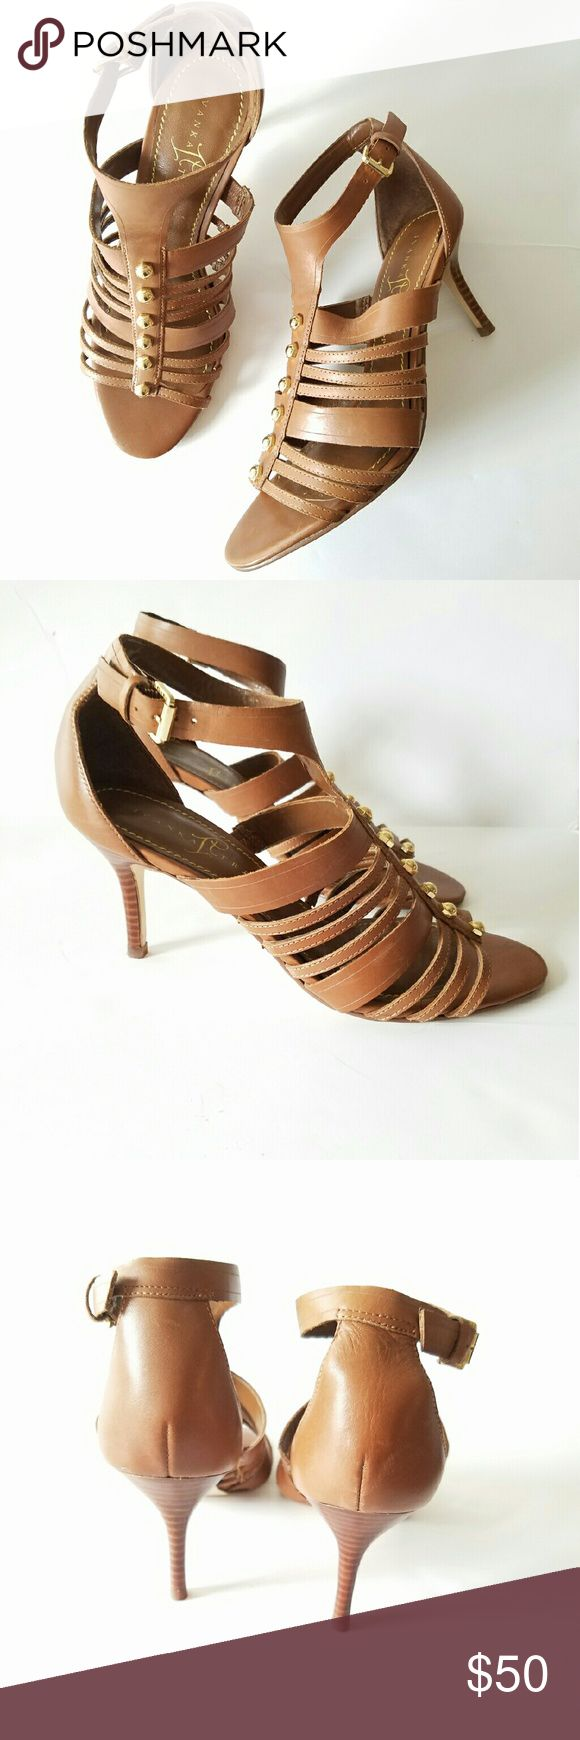 Camel Gladiator Cage Ivanka Leather Heels Sz 7.5 *Great used condition *Camel Colored Leather *Amazing Gladiator Cage Heel Sandals *Gold Hardware Faucets *Ivanka Trump *Size 7.5 *Heels Height 4inch   **Condition score 7 of 10   -* Minor signs of wear when closely inspected. Ivanka Trump Shoes Heels